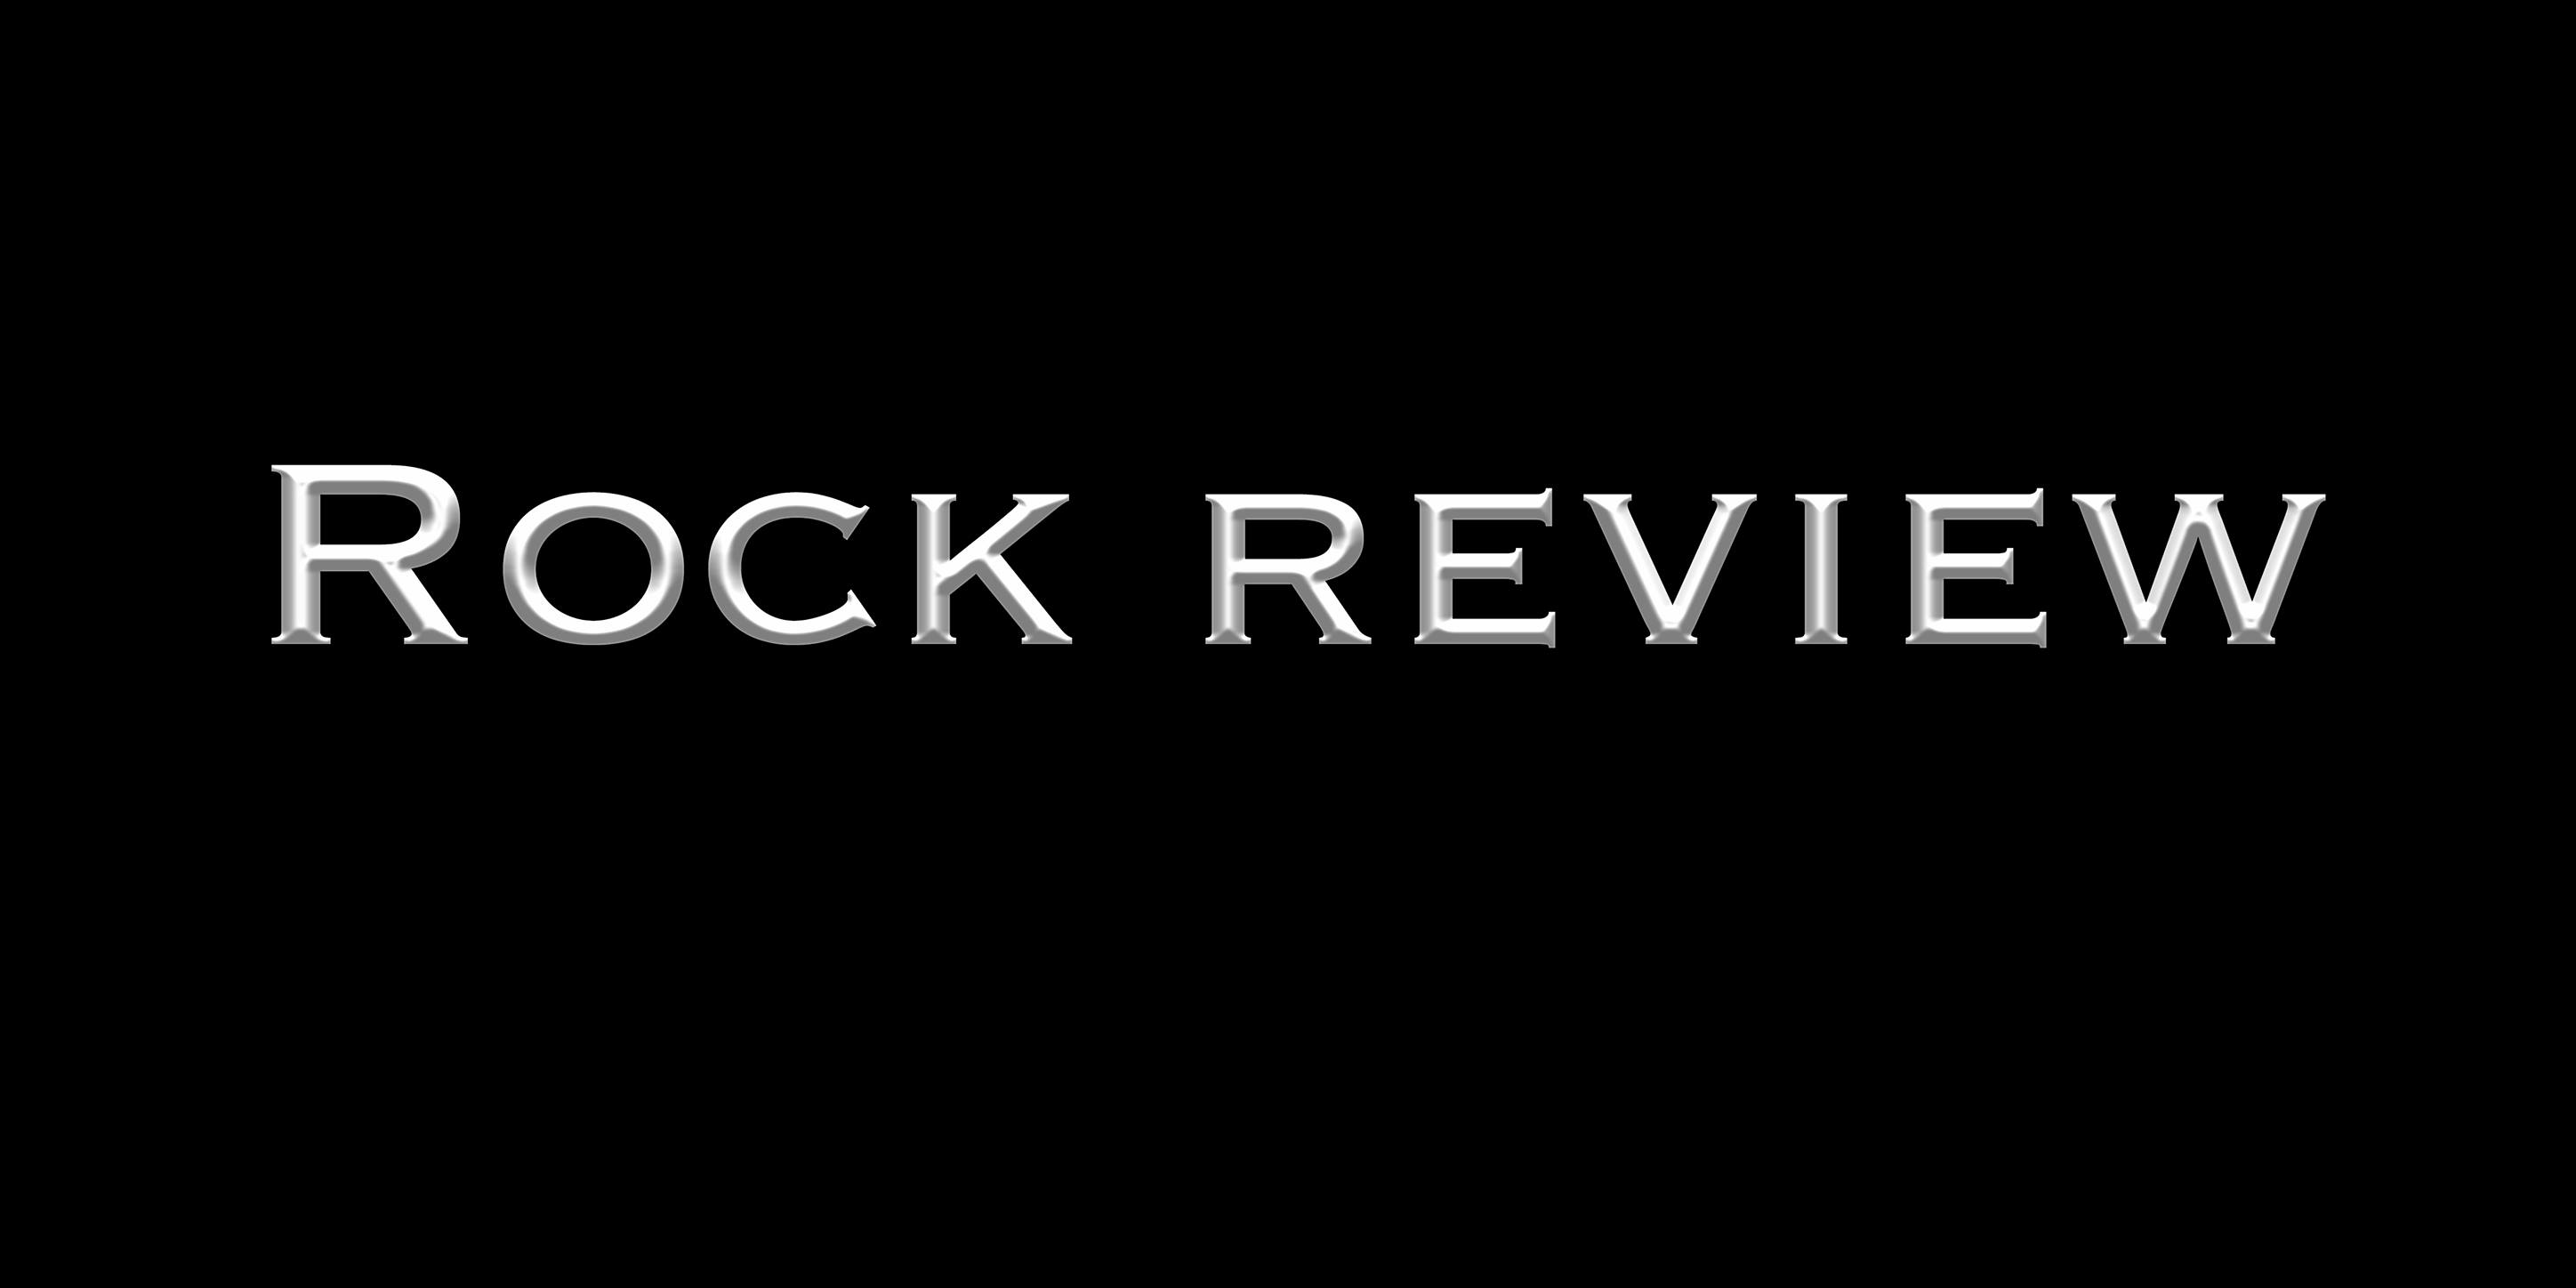 Rock Review